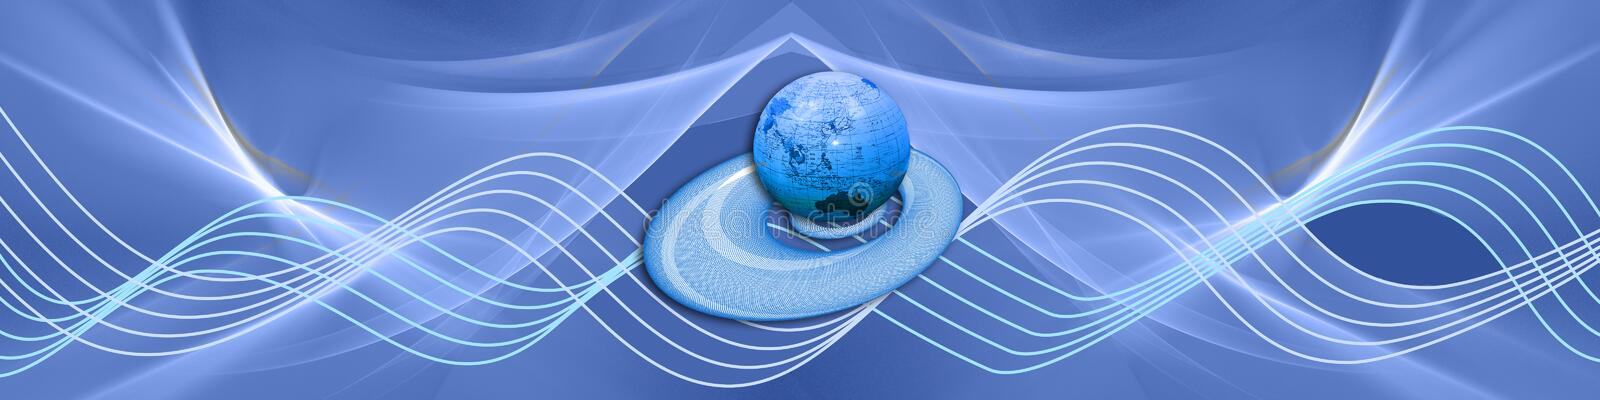 Blue waves with globe. Blue banner with waves and our globe on a floating circle. The circle has spirographic patterns. Can be used as an Internet related design vector illustration